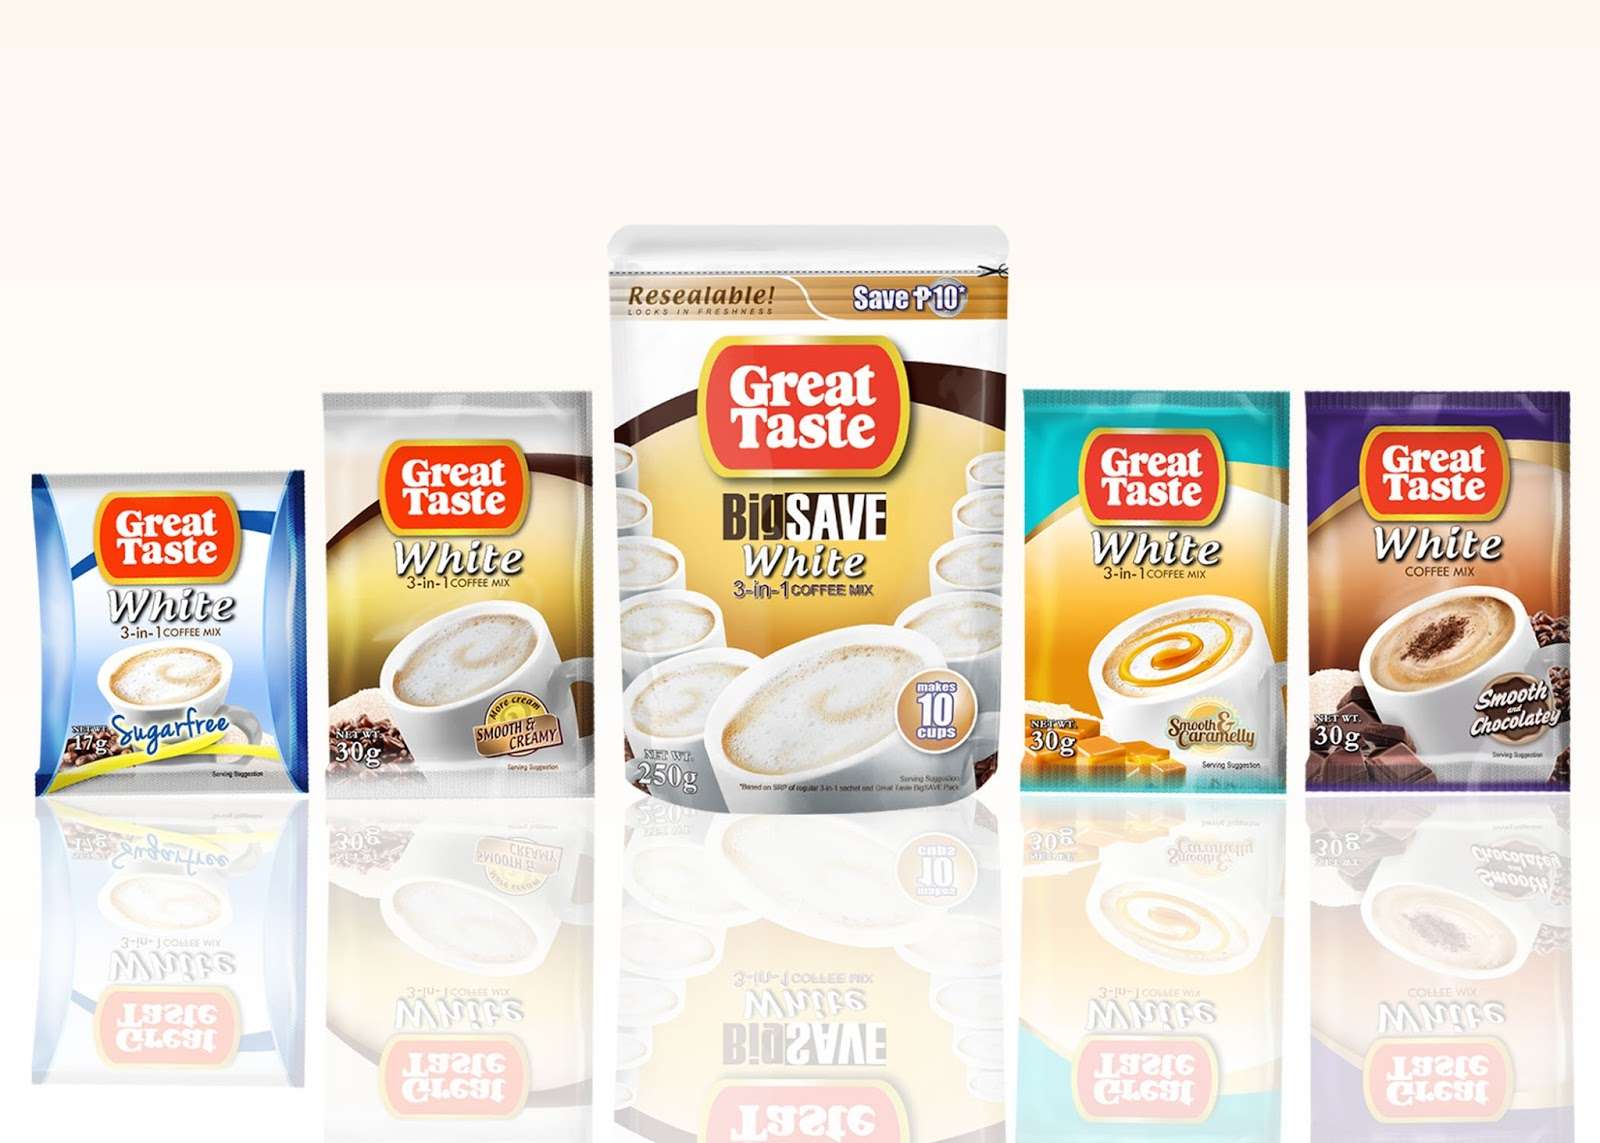 Great Taste White Gives You The Best Mornings With Choose Win Silver Queen Montes 50g Makes Everyday Wins Even Better Promo Exciting Gadgets A Brand New Toyota Vios And Cash